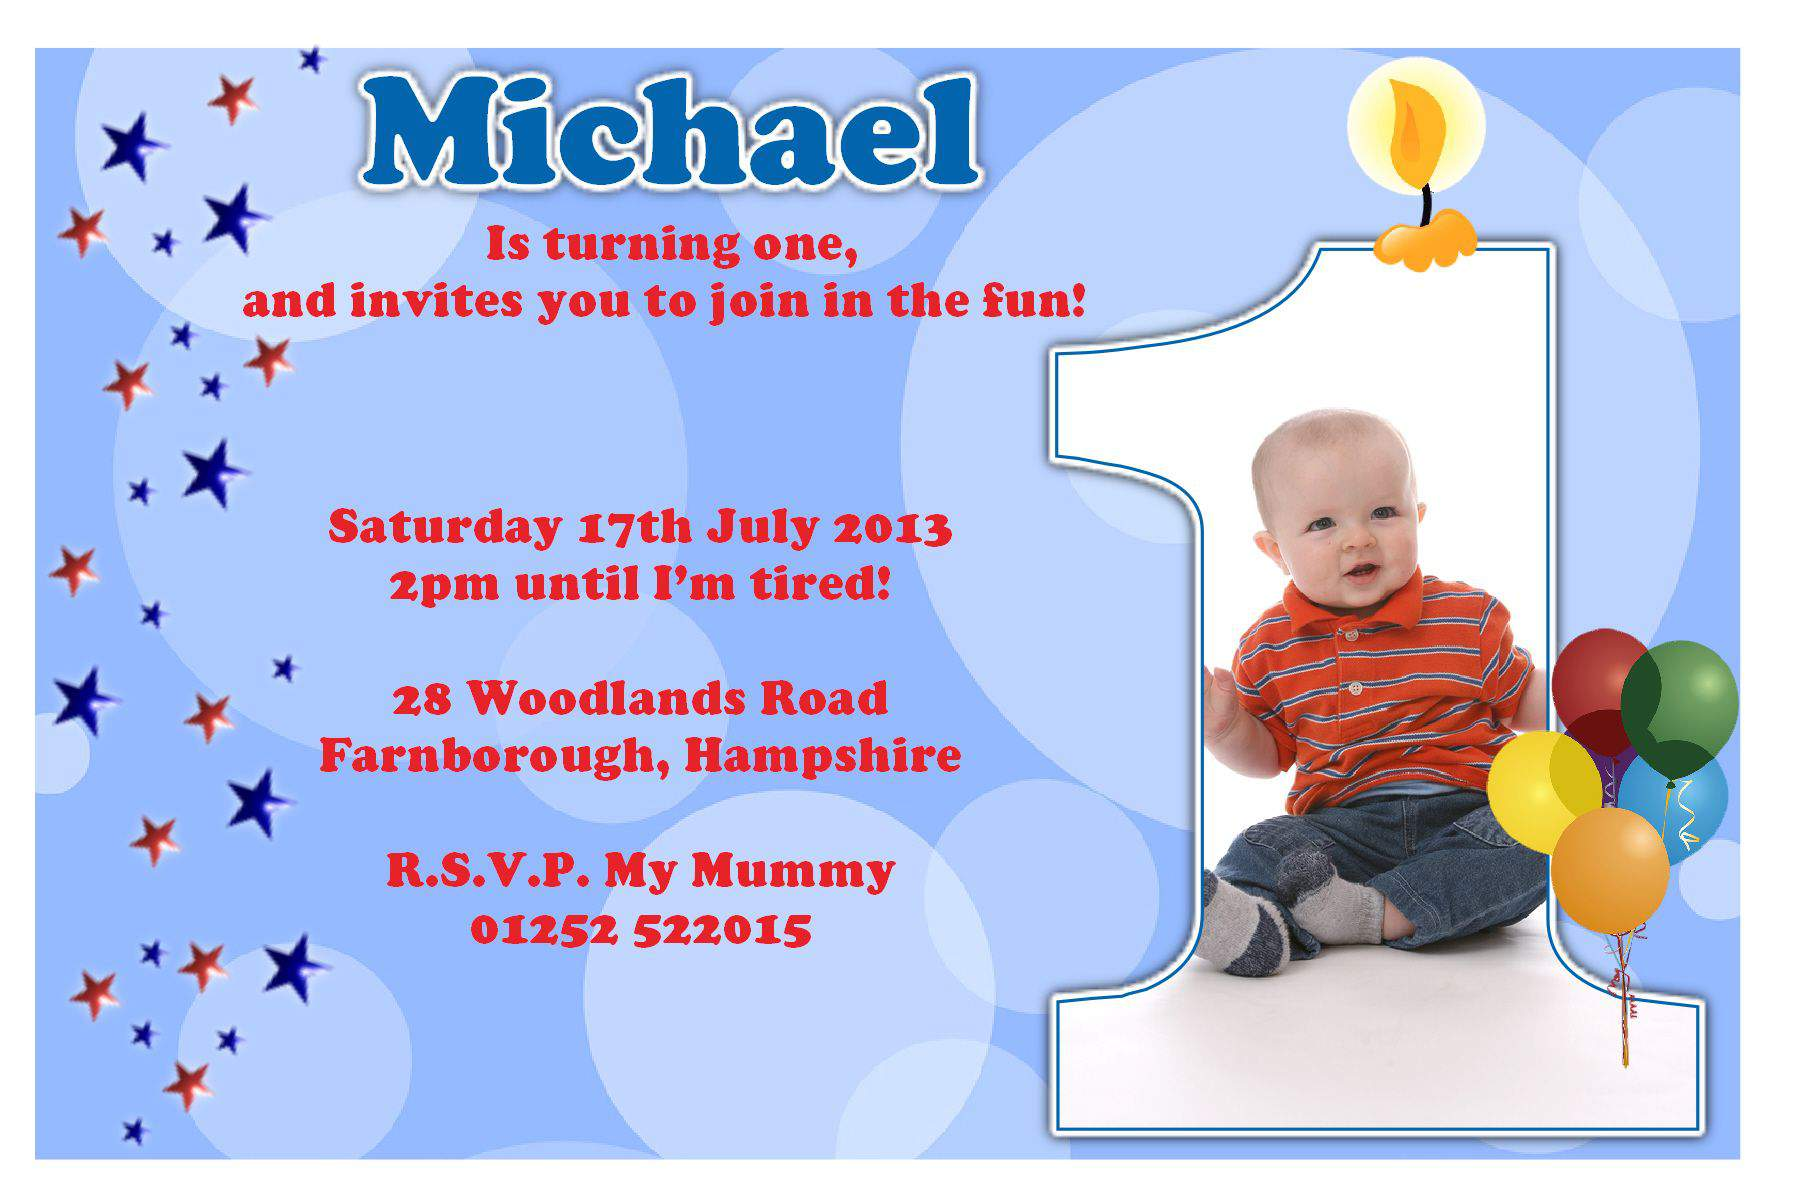 1st year birthday invitation card template ; 1St-Birthday-Invitations-Boy-Templates-to-get-ideas-how-to-make-your-own-birthday-Invitation-design-10